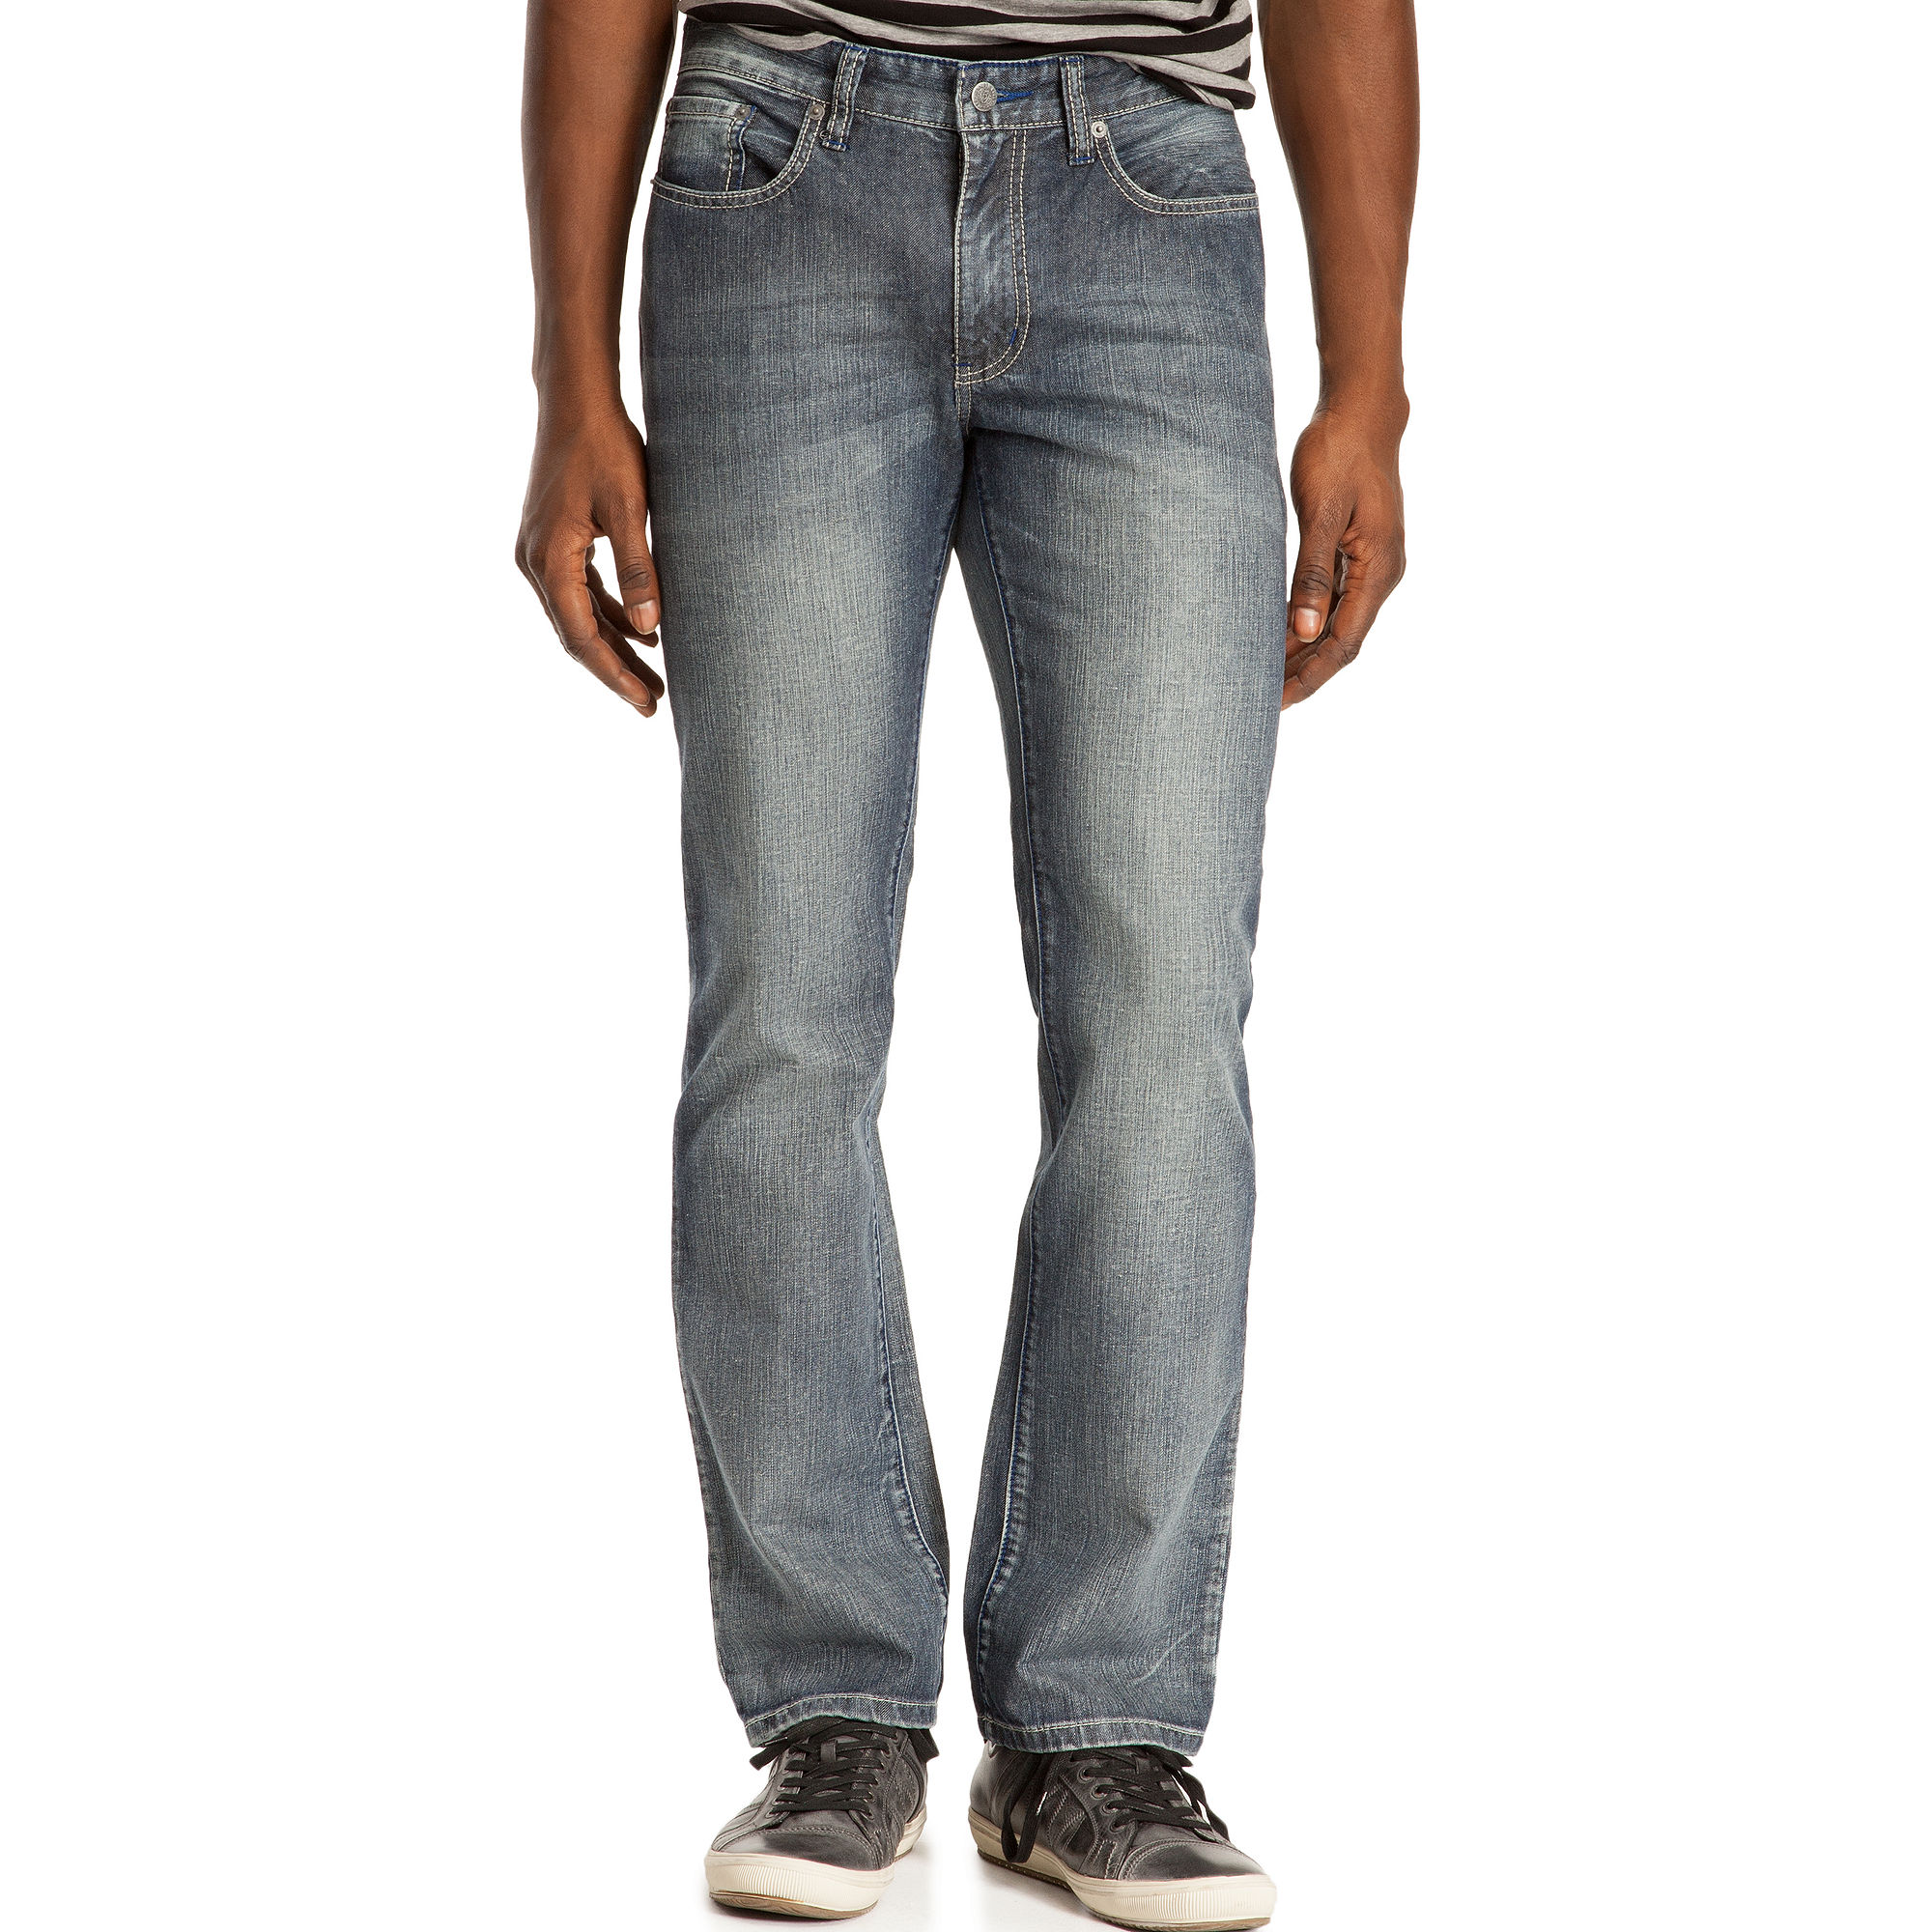 f402a61b Kenneth Cole Reaction Light Wash Straight Leg Jeans in Blue for Men ...